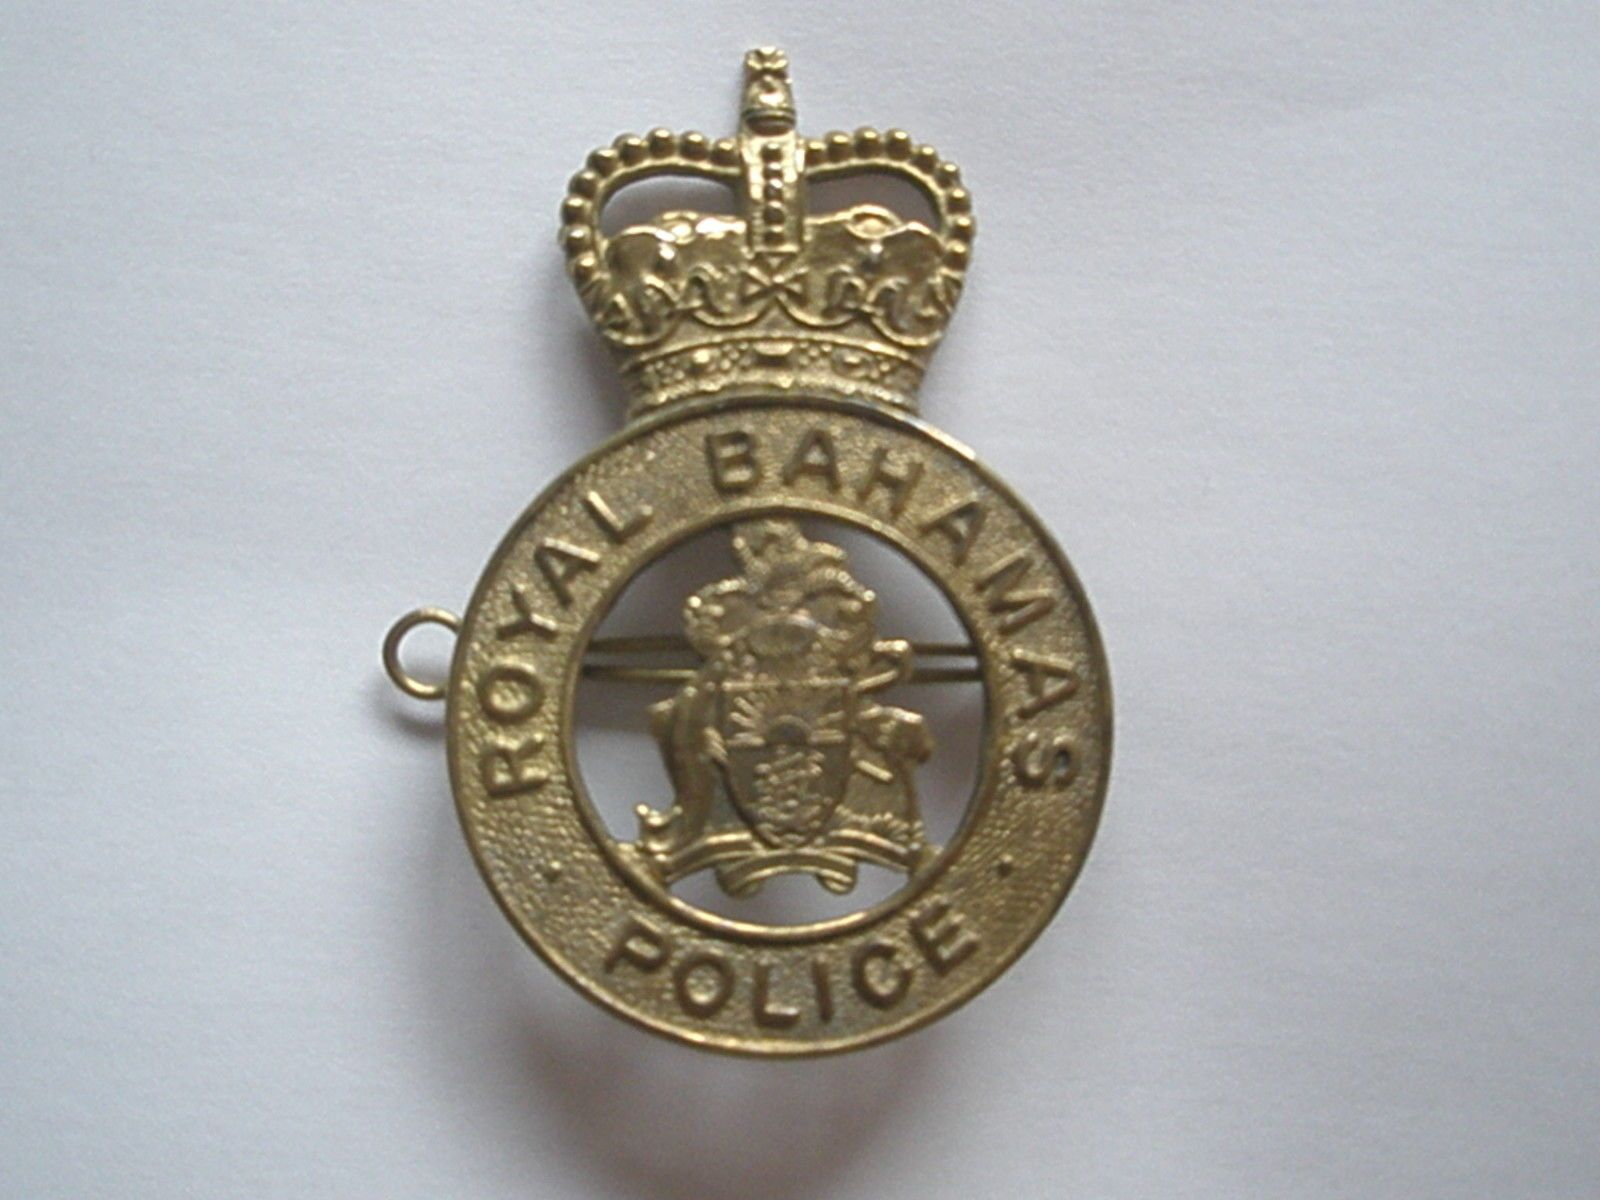 pendant bahamas police we no got badge royal badges pin pinterest